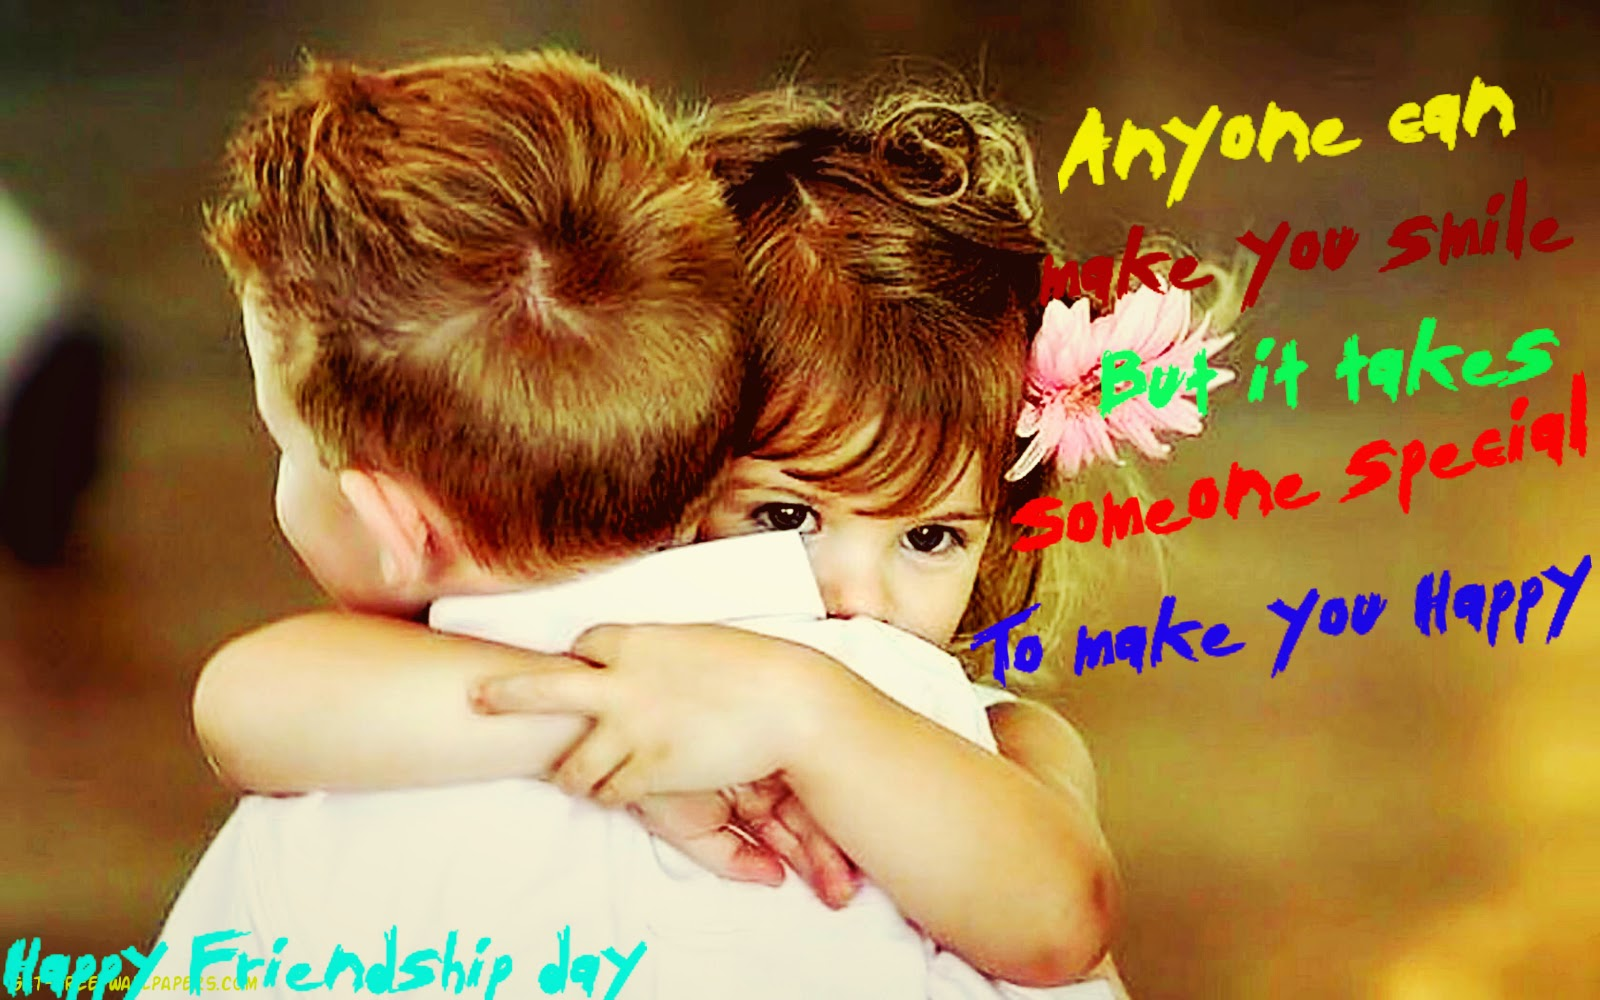 Happy Friendship Day 2014 Wallpapers free Download(1920x1080, 1440x1080)